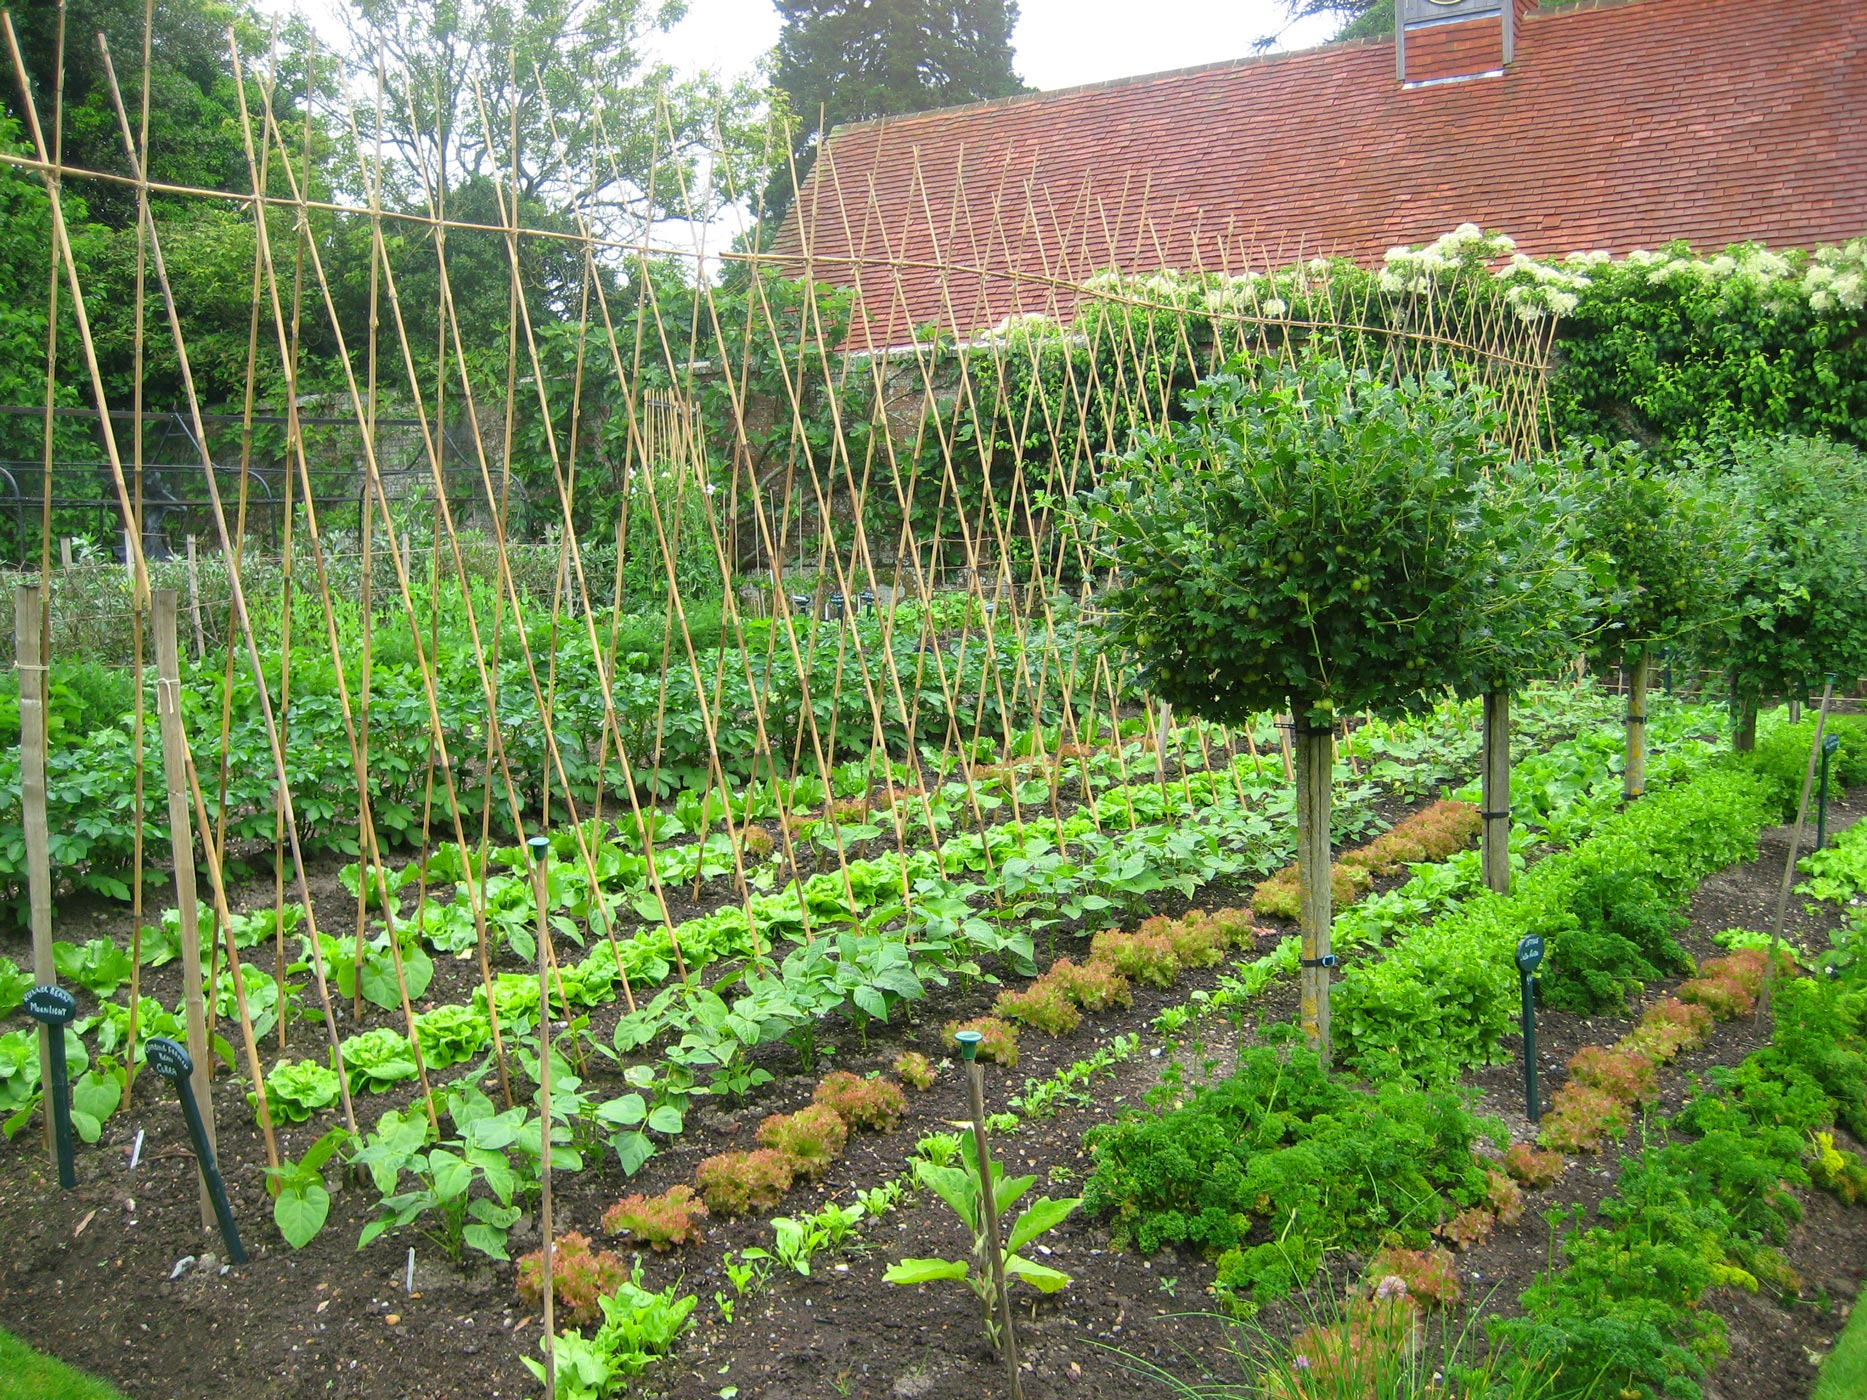 Kitchen Garden Week - Pashley Manor Gardens